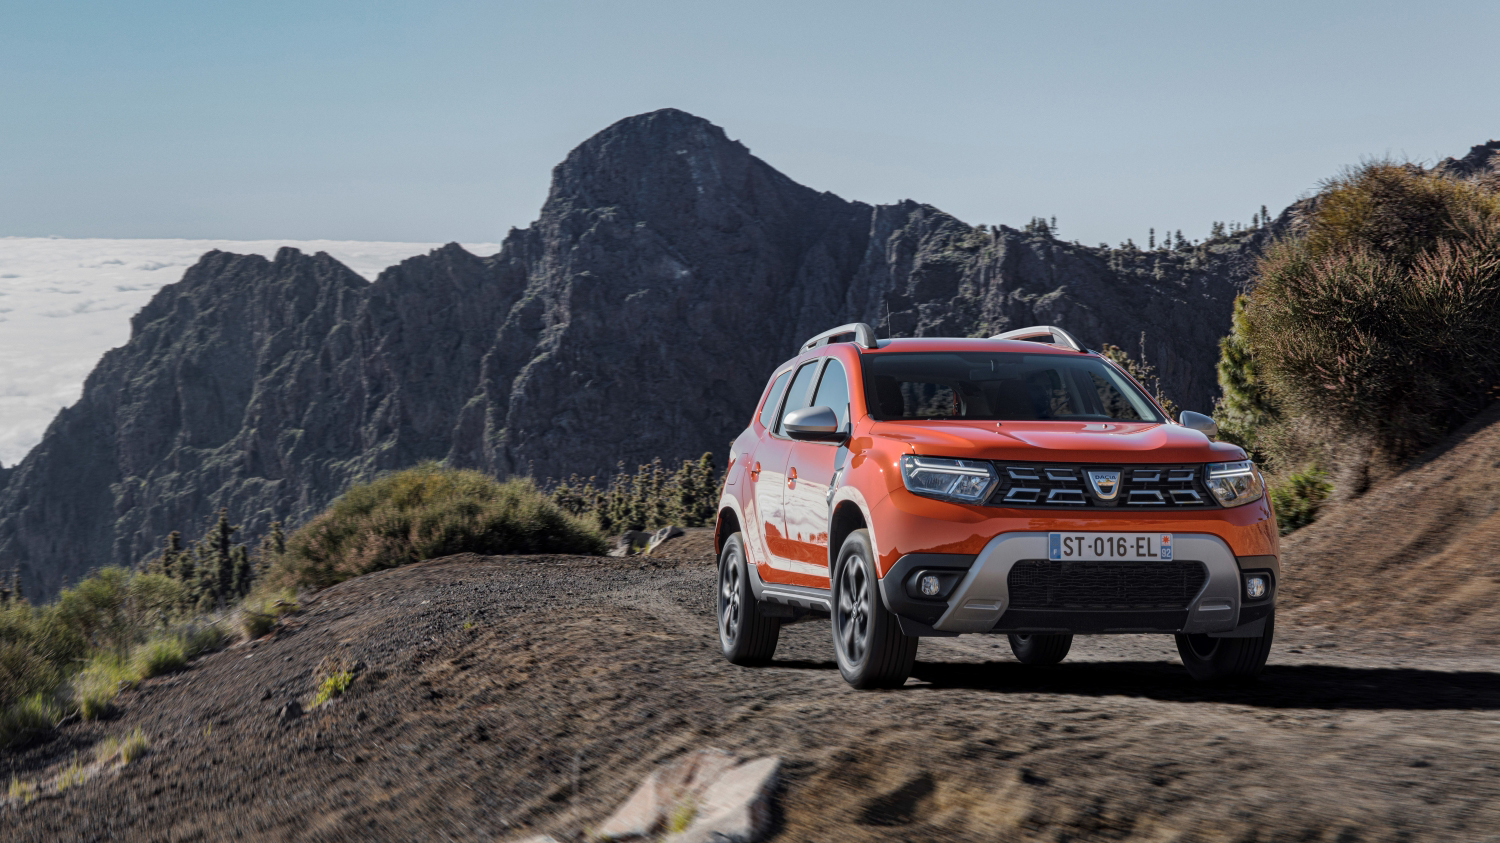 Restylage 2021 pour le Dacia Duster